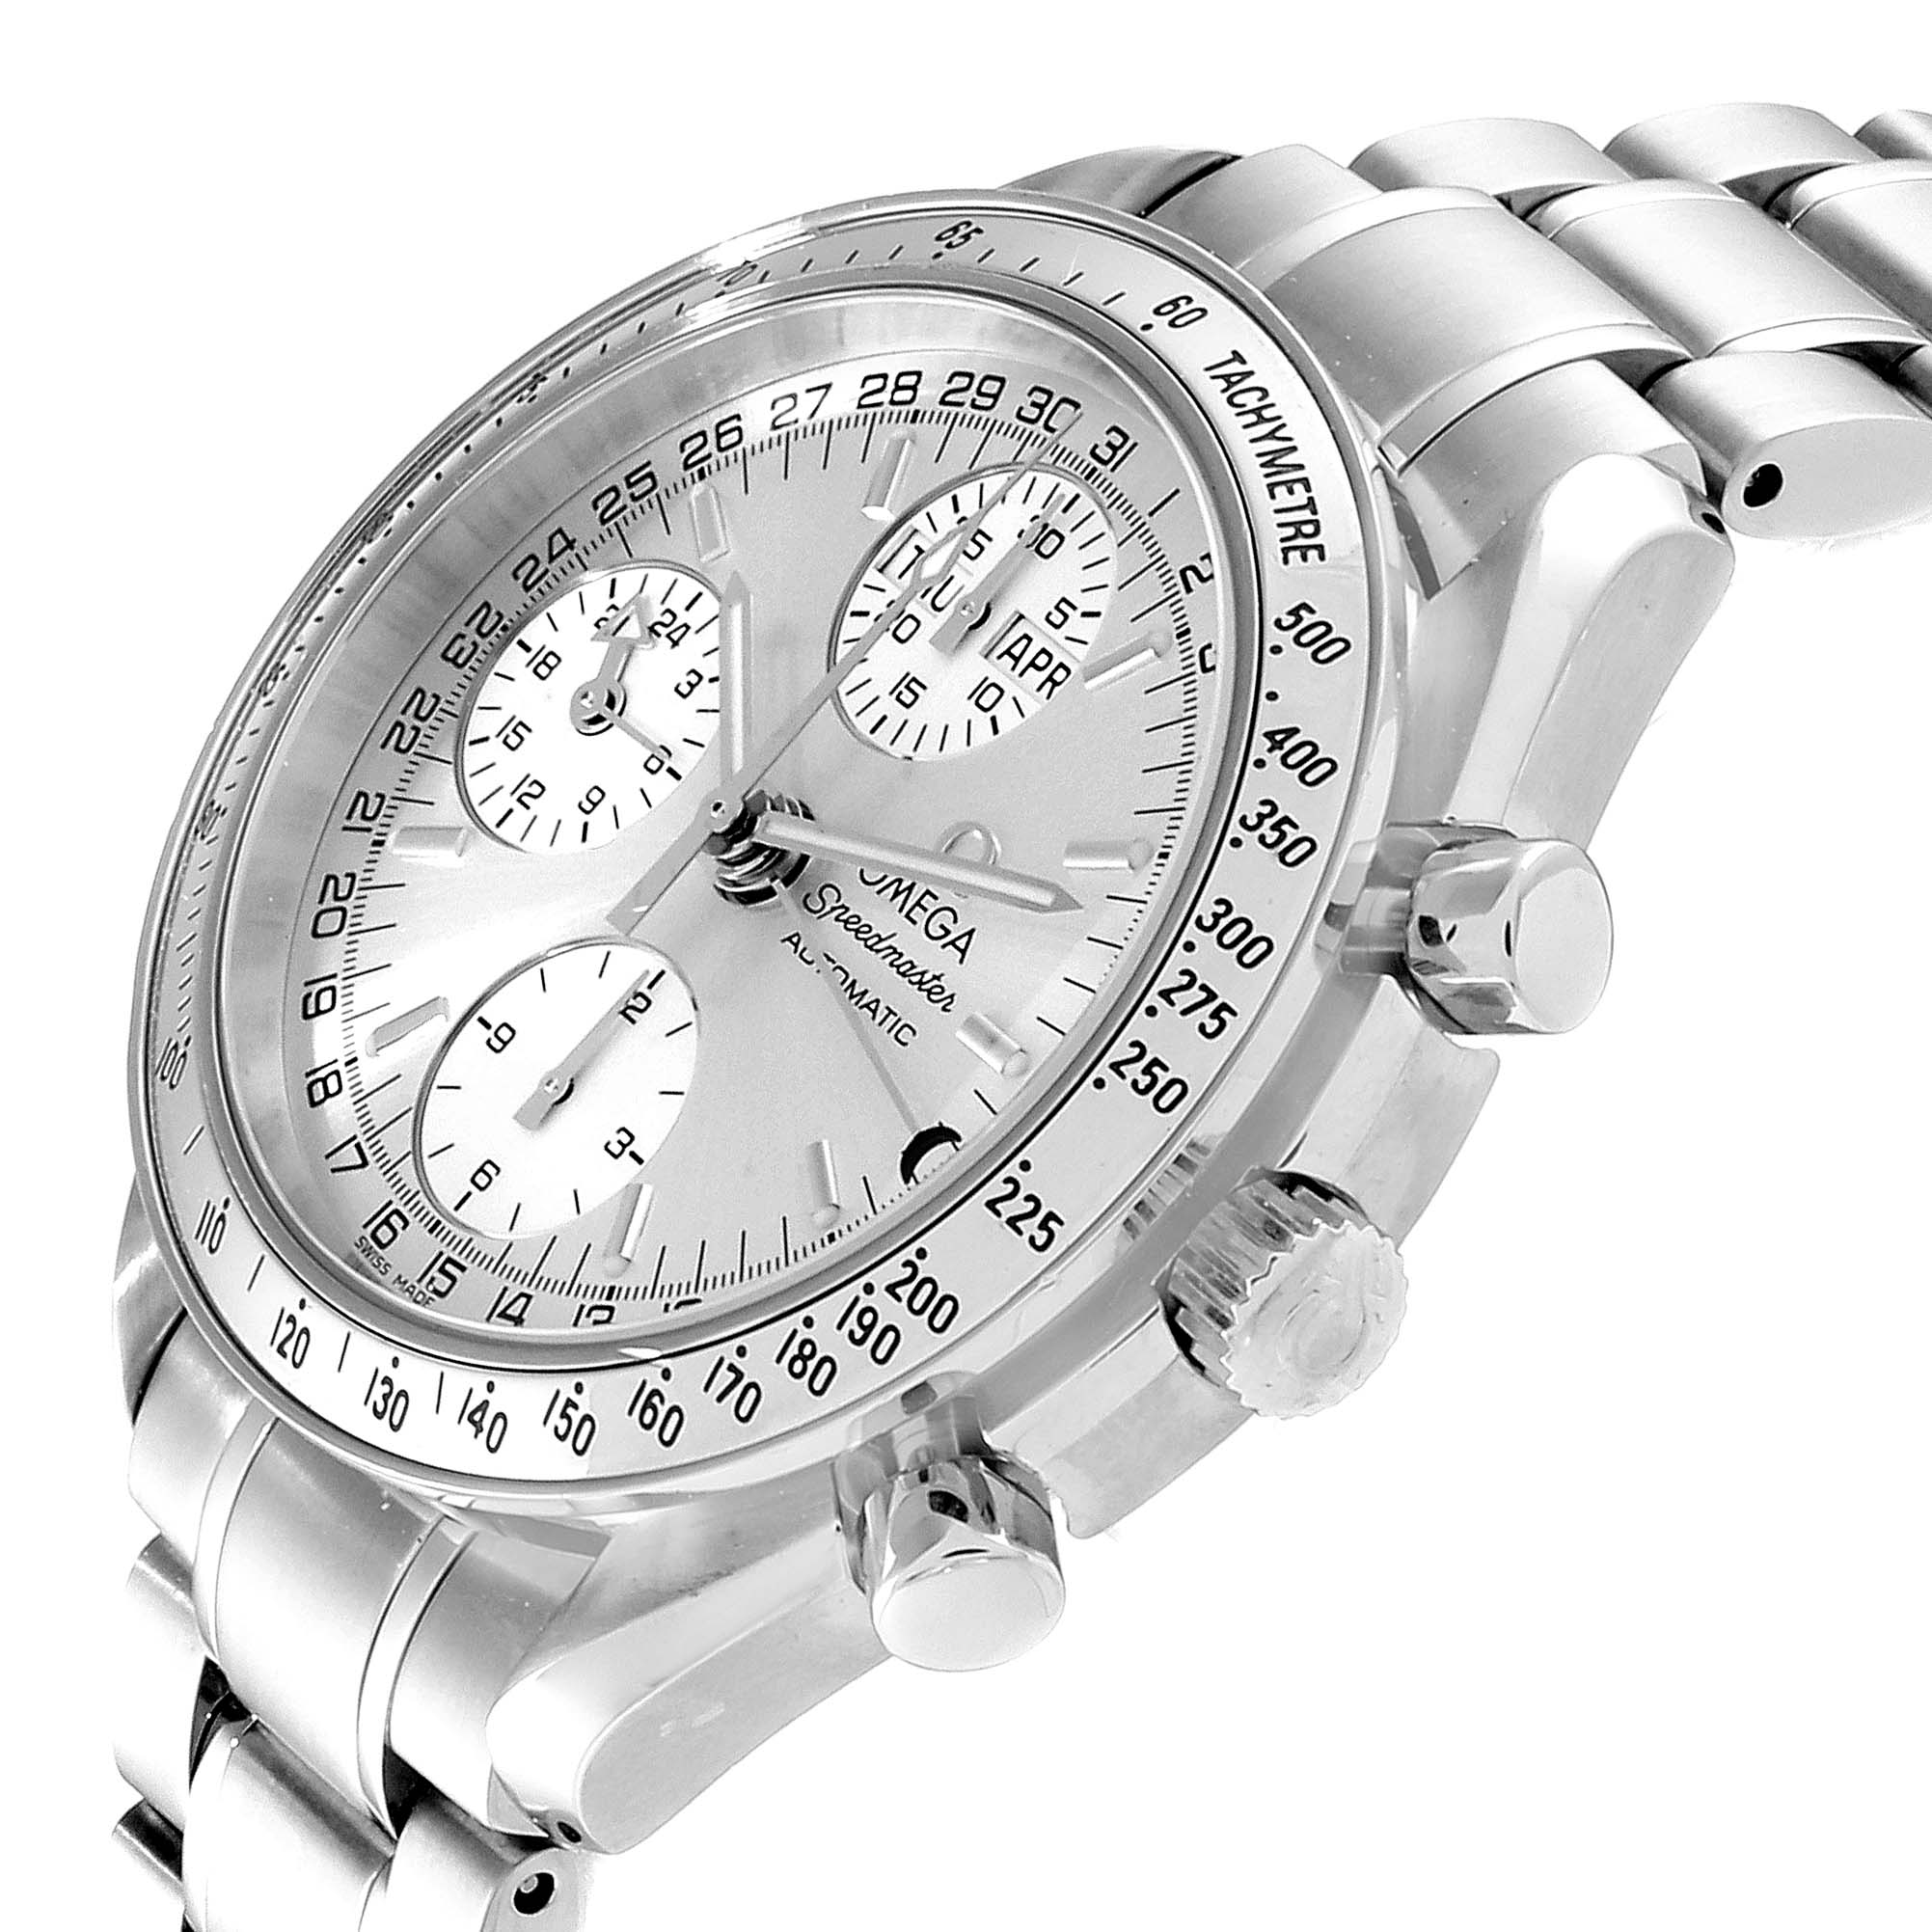 Omega Speedmaster Day Date Chronograph Silver Dial Mens Watch 3523.30.00 SwissWatchExpo